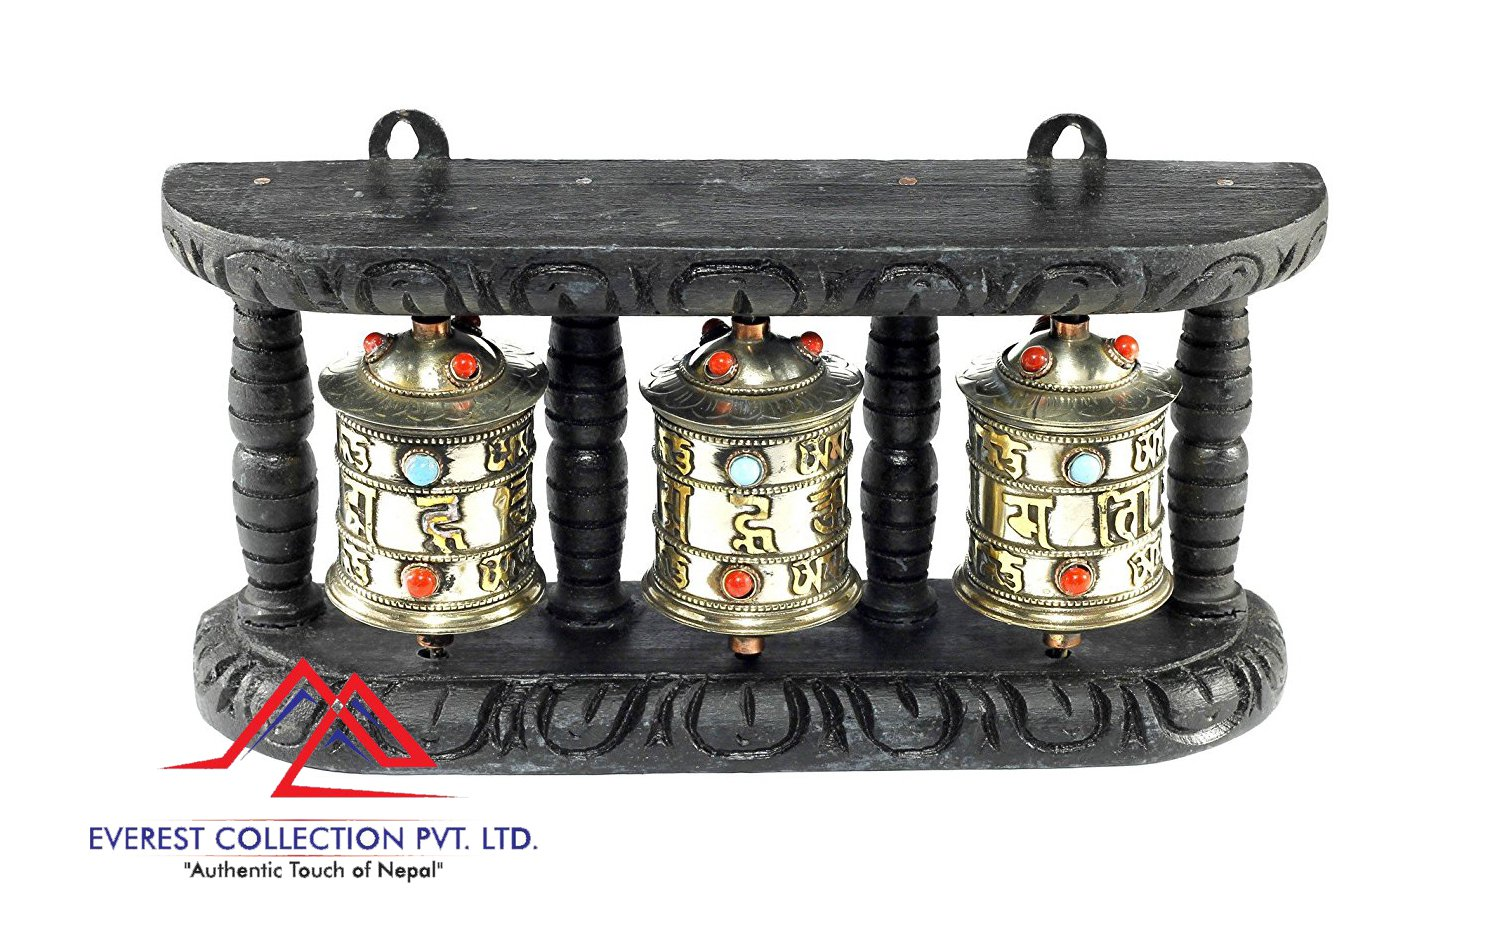 WALL HANGING TIBETAN PRAYER WHEEL - 3 IN 1 WOODEN HANDCARVED FROM NEPAL